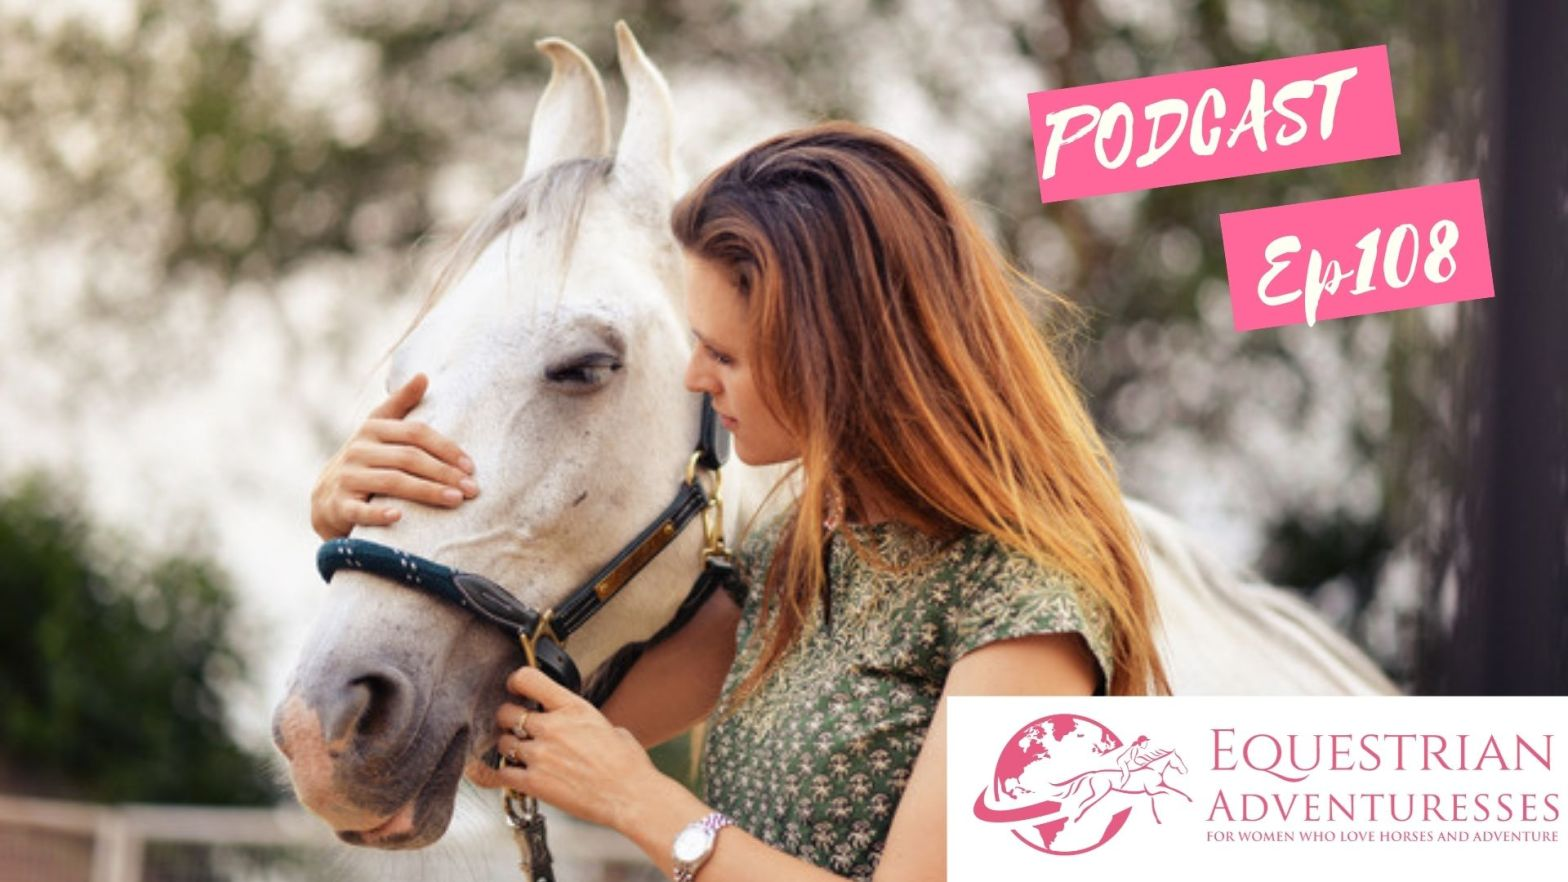 Equestrian Adventuresses Travel and Horse Podcast Ep 108 - Emotional Coaching with Horses in India